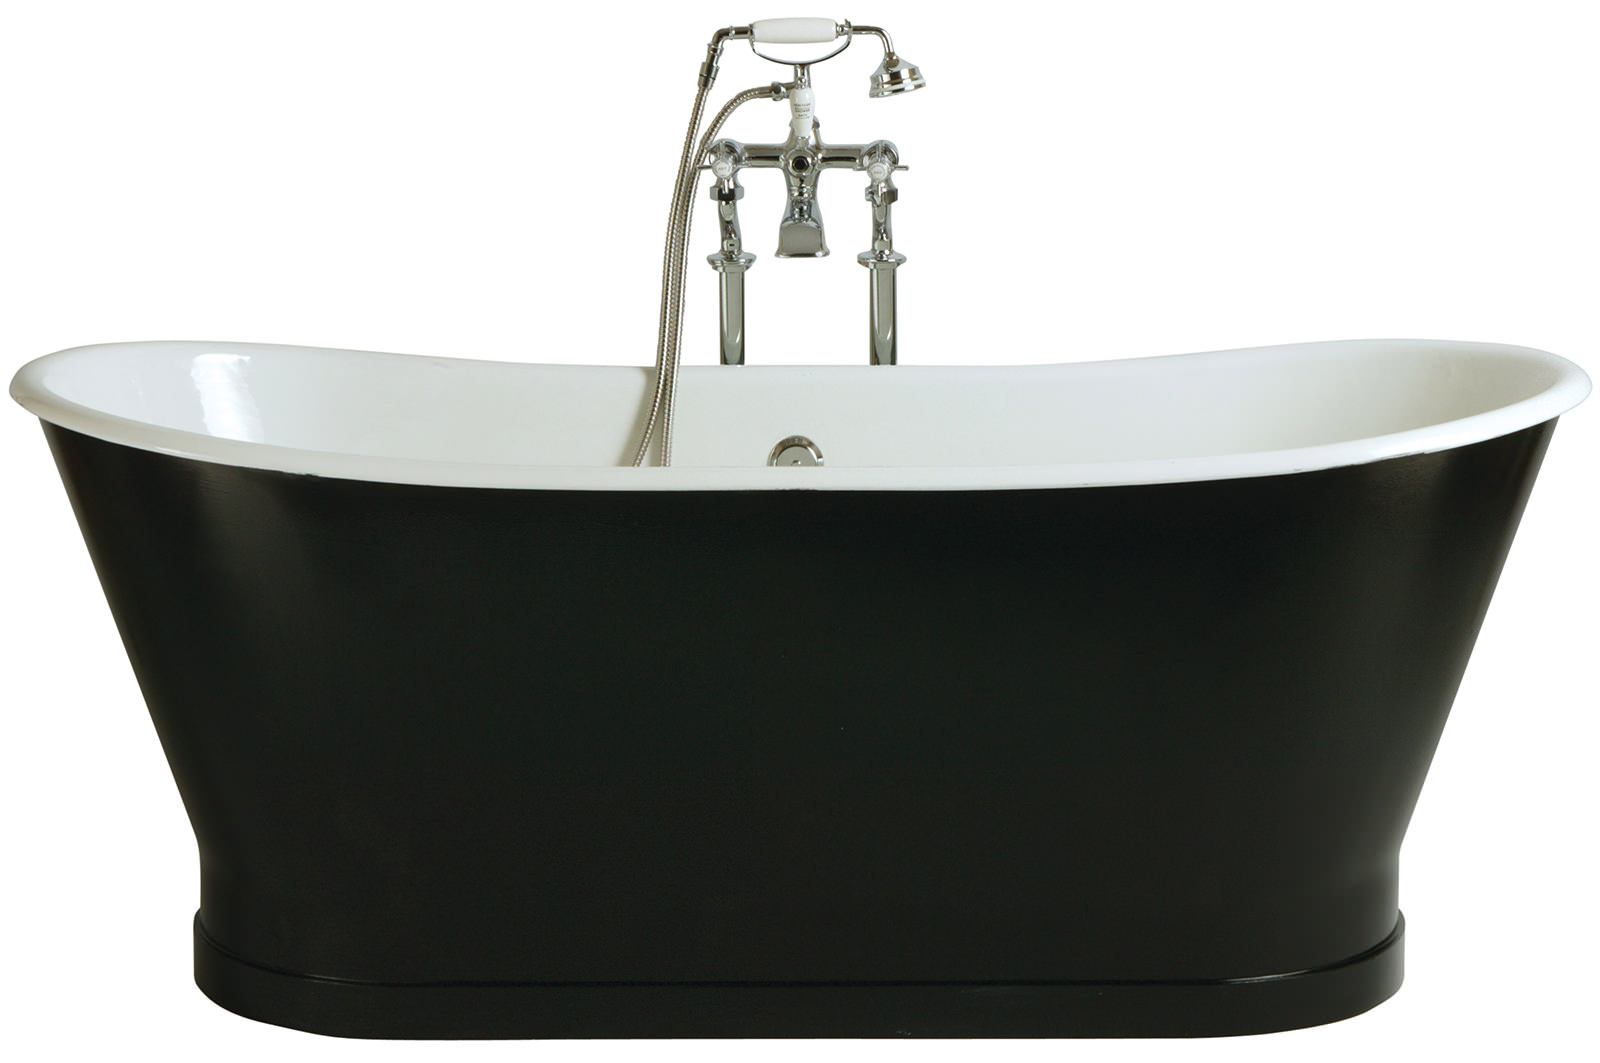 ... freestanding heritage madeira freestanding cast iron double ended bath